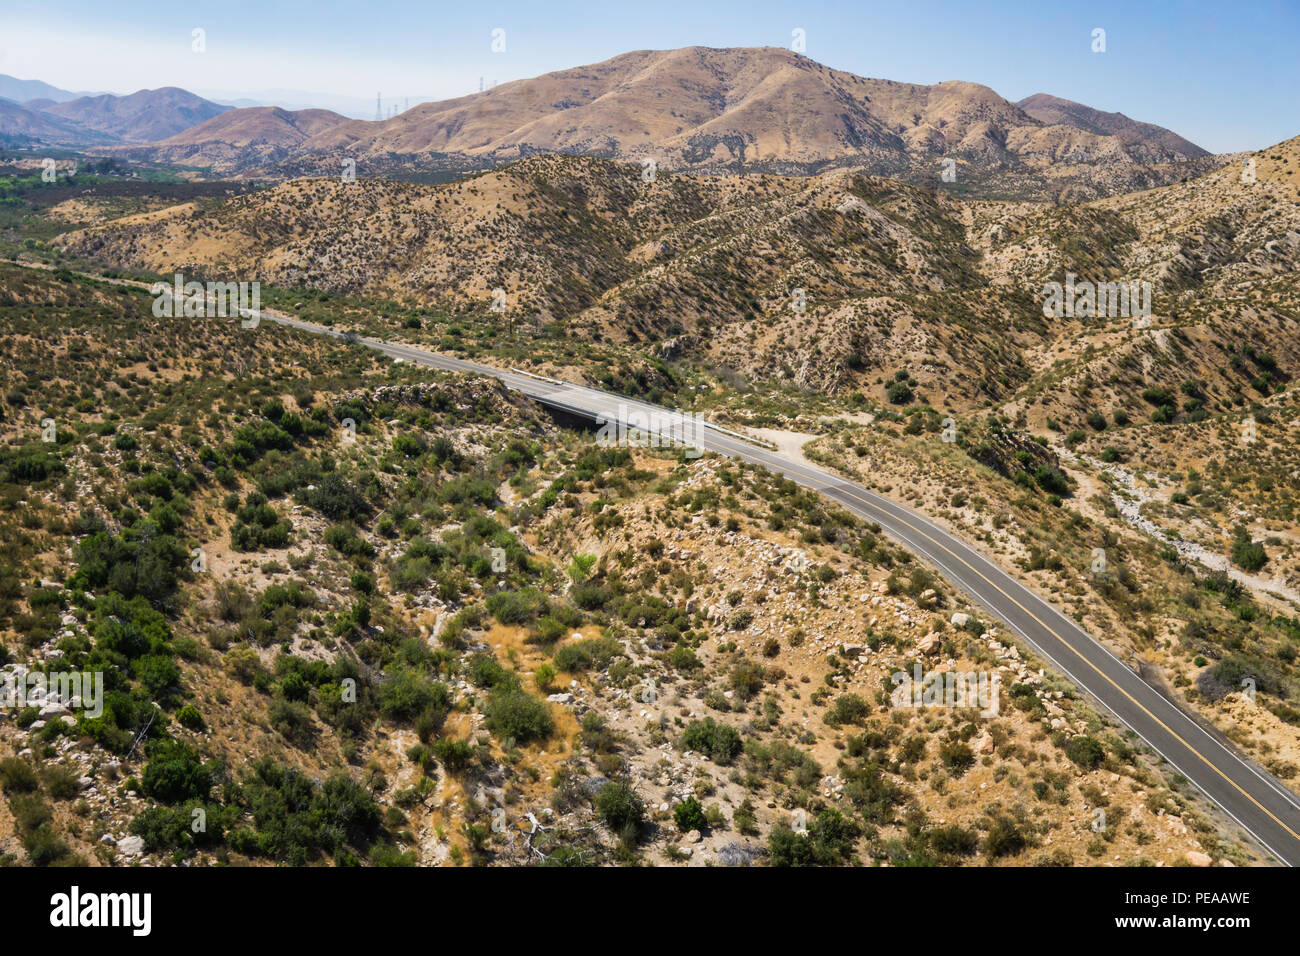 Bend in a highway in the hills of the desert of the American southwest. - Stock Image